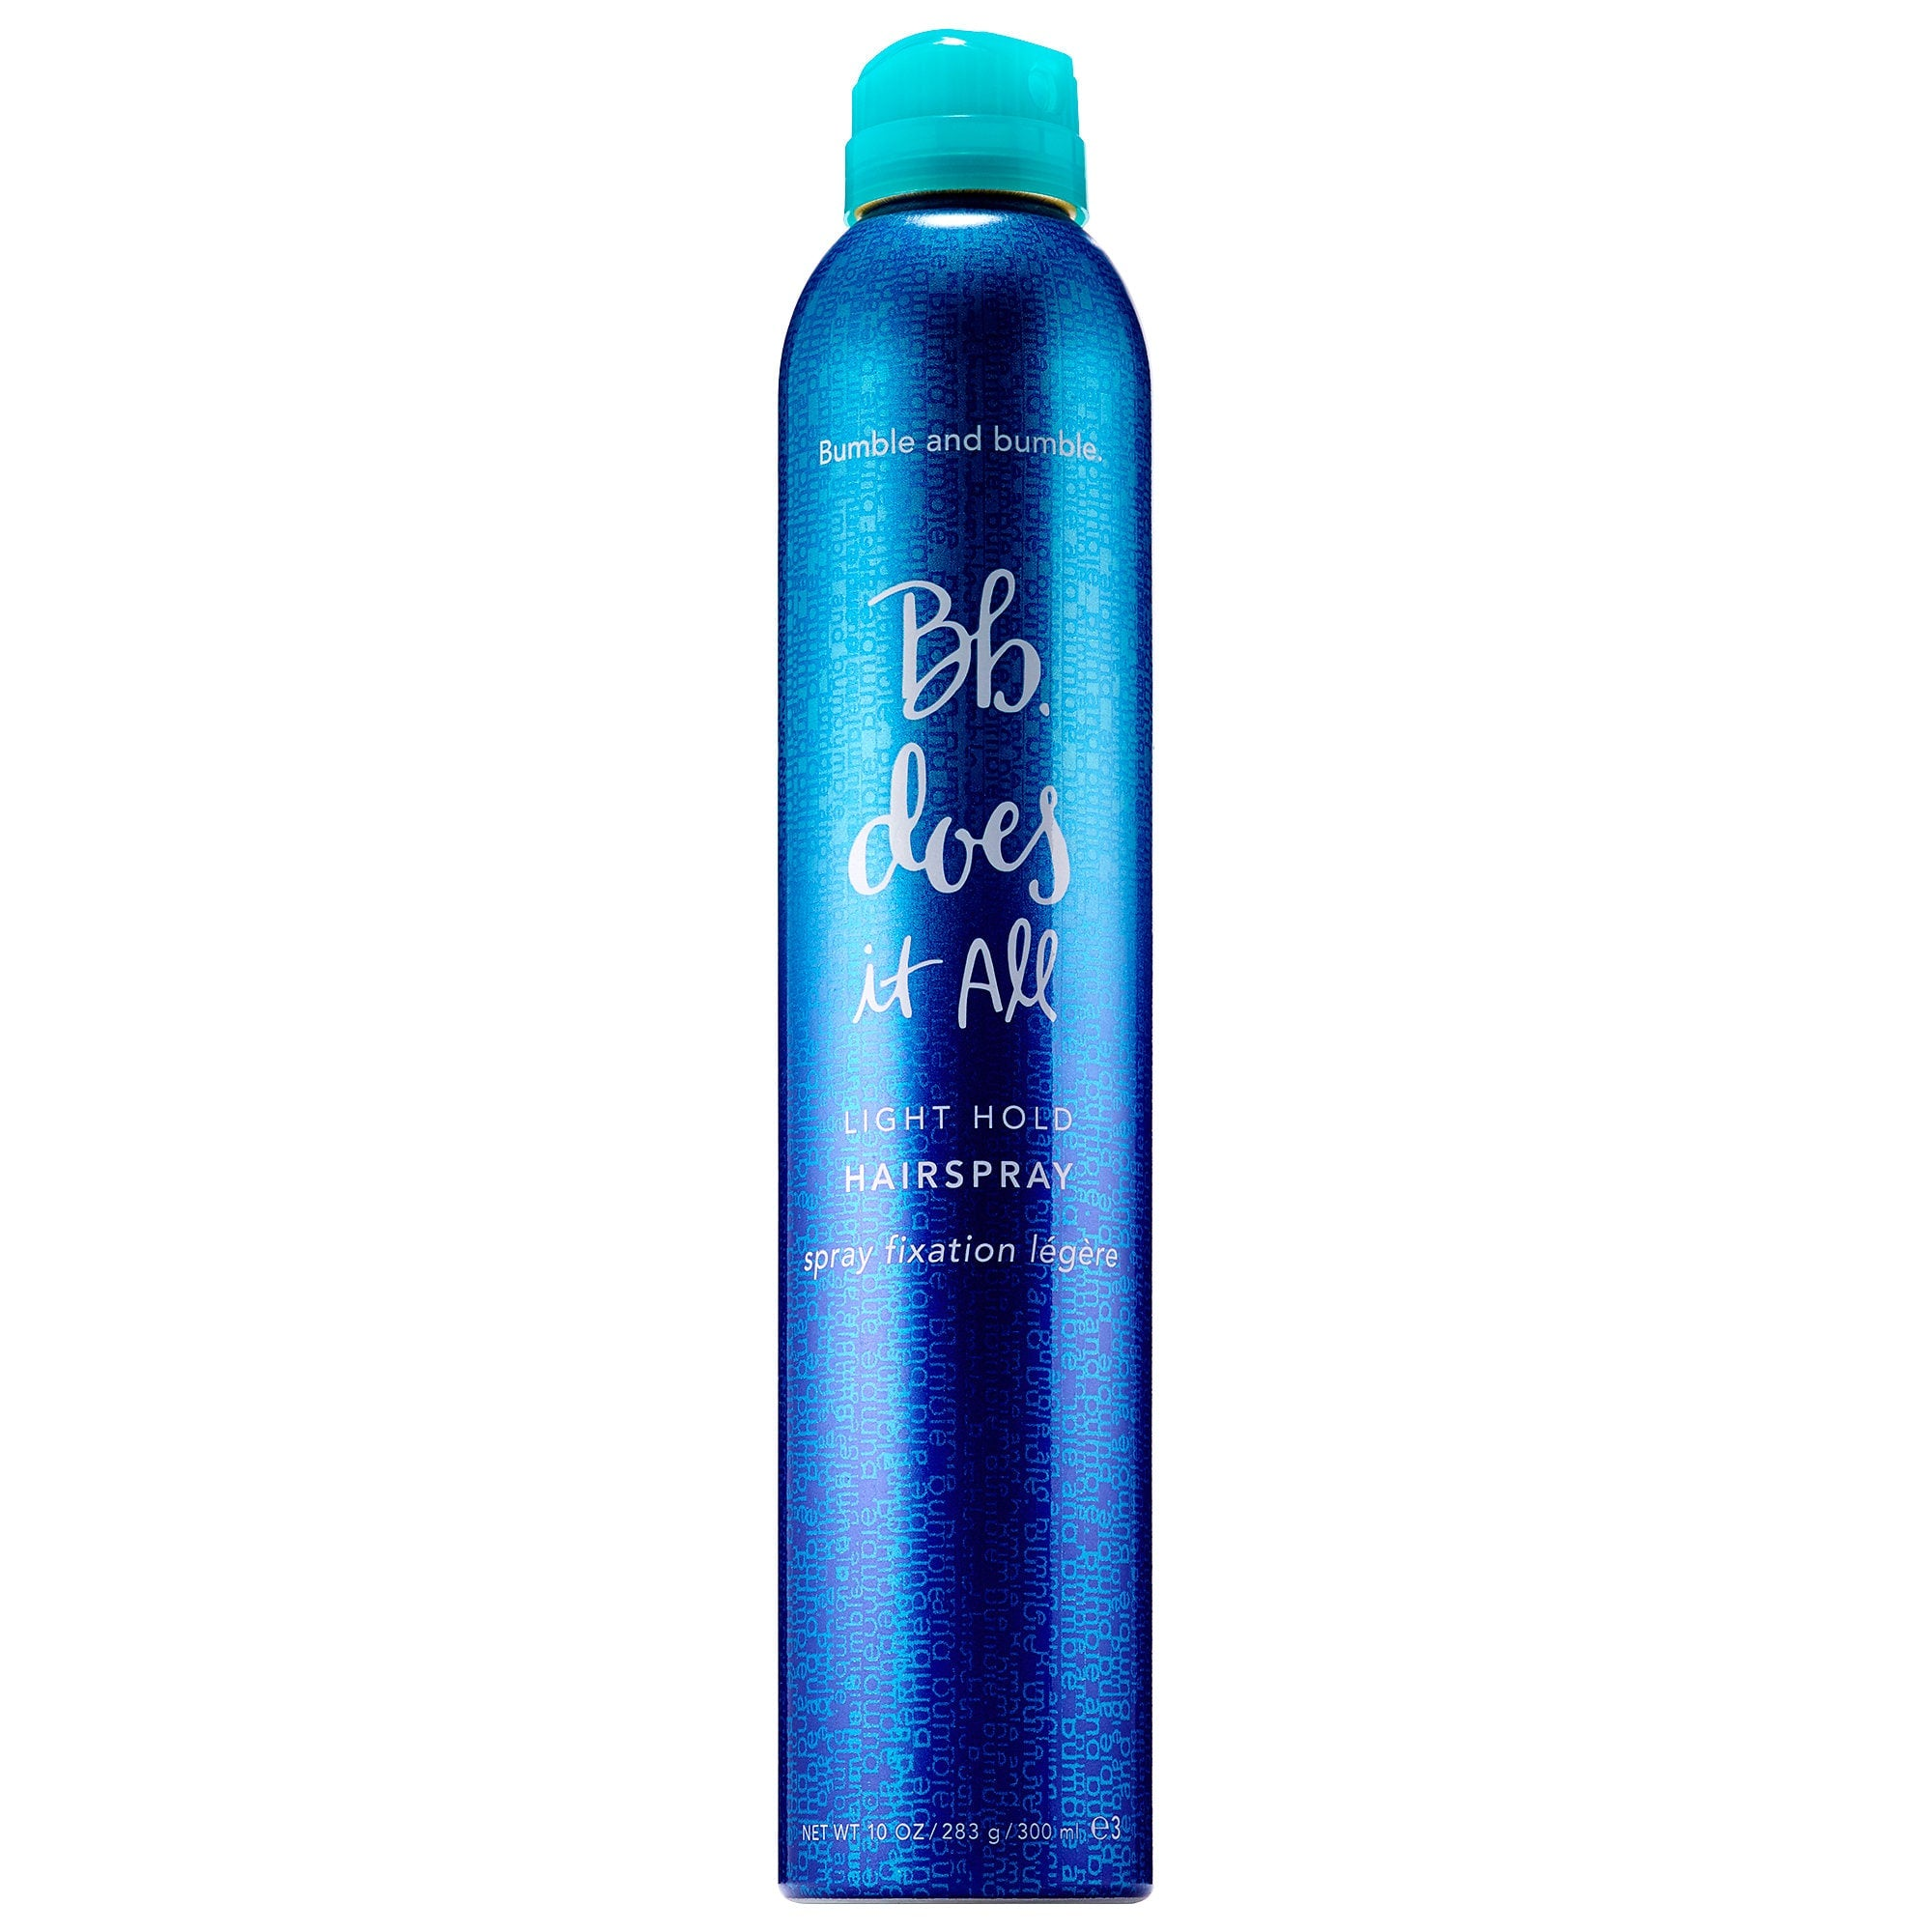 Bumble and bumble Does It All Light Hold Hairspray | New London Pharmacy